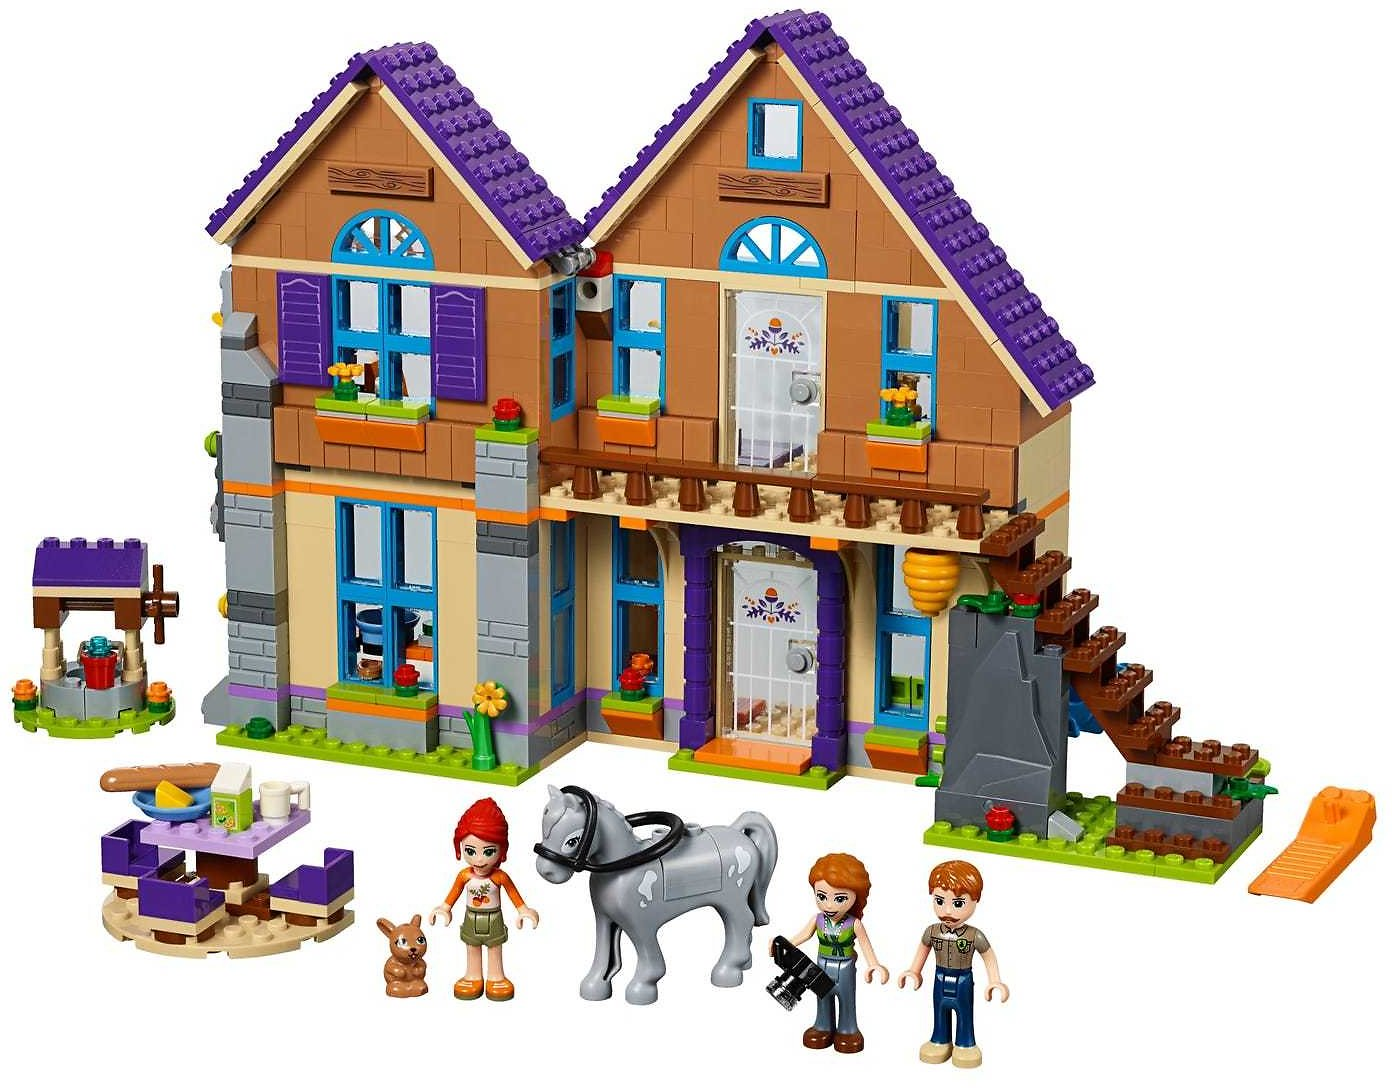 Mia's House 41369   Friends   Buy Online At The Official LEGO® Shop US